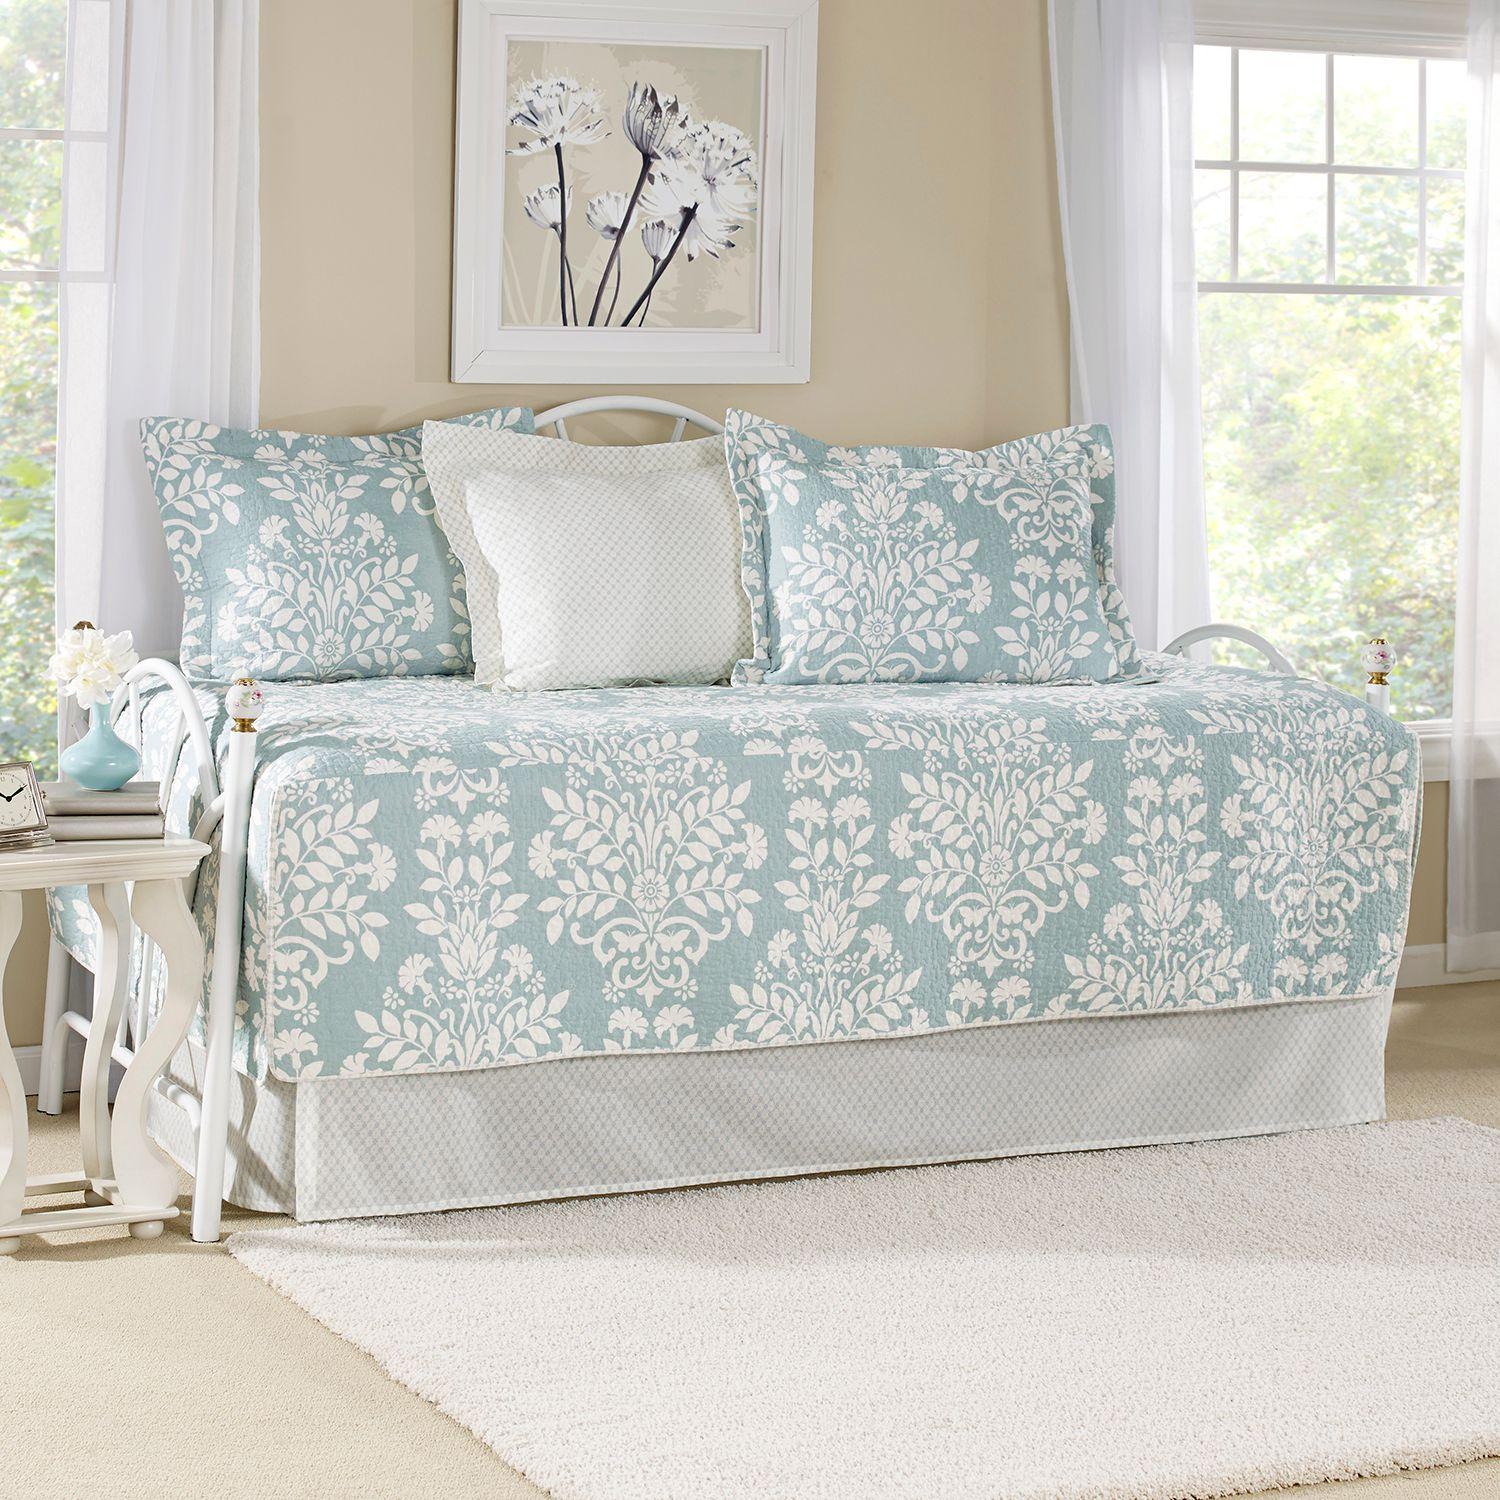 laura ashley lifestyles rowland 5pc daybed quilt set